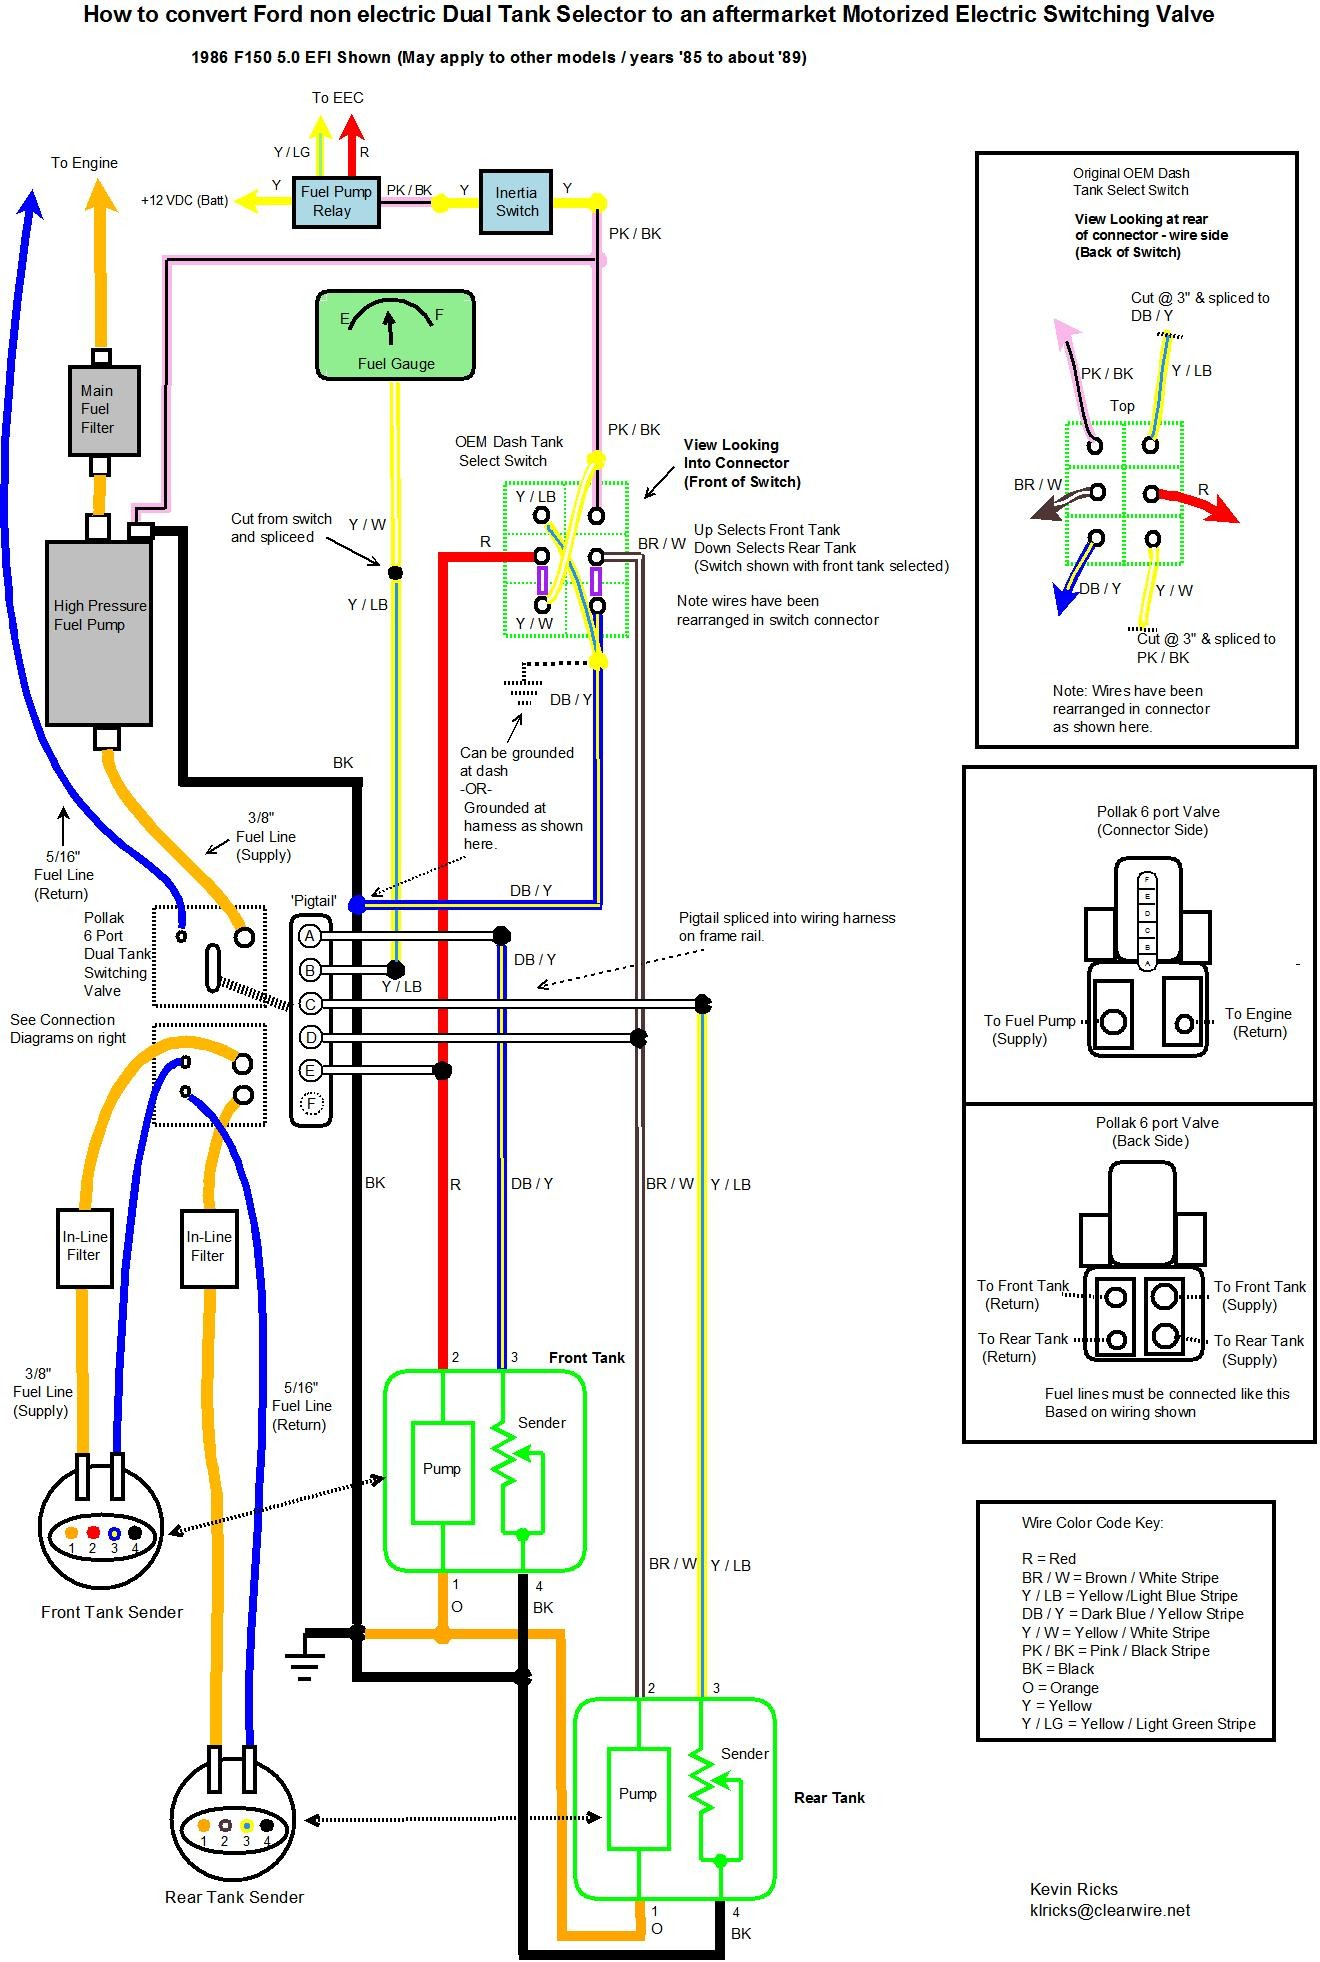 66 Chevy Ignition Switch Wiring Diagram Trusted Diagrams 1956 Truck